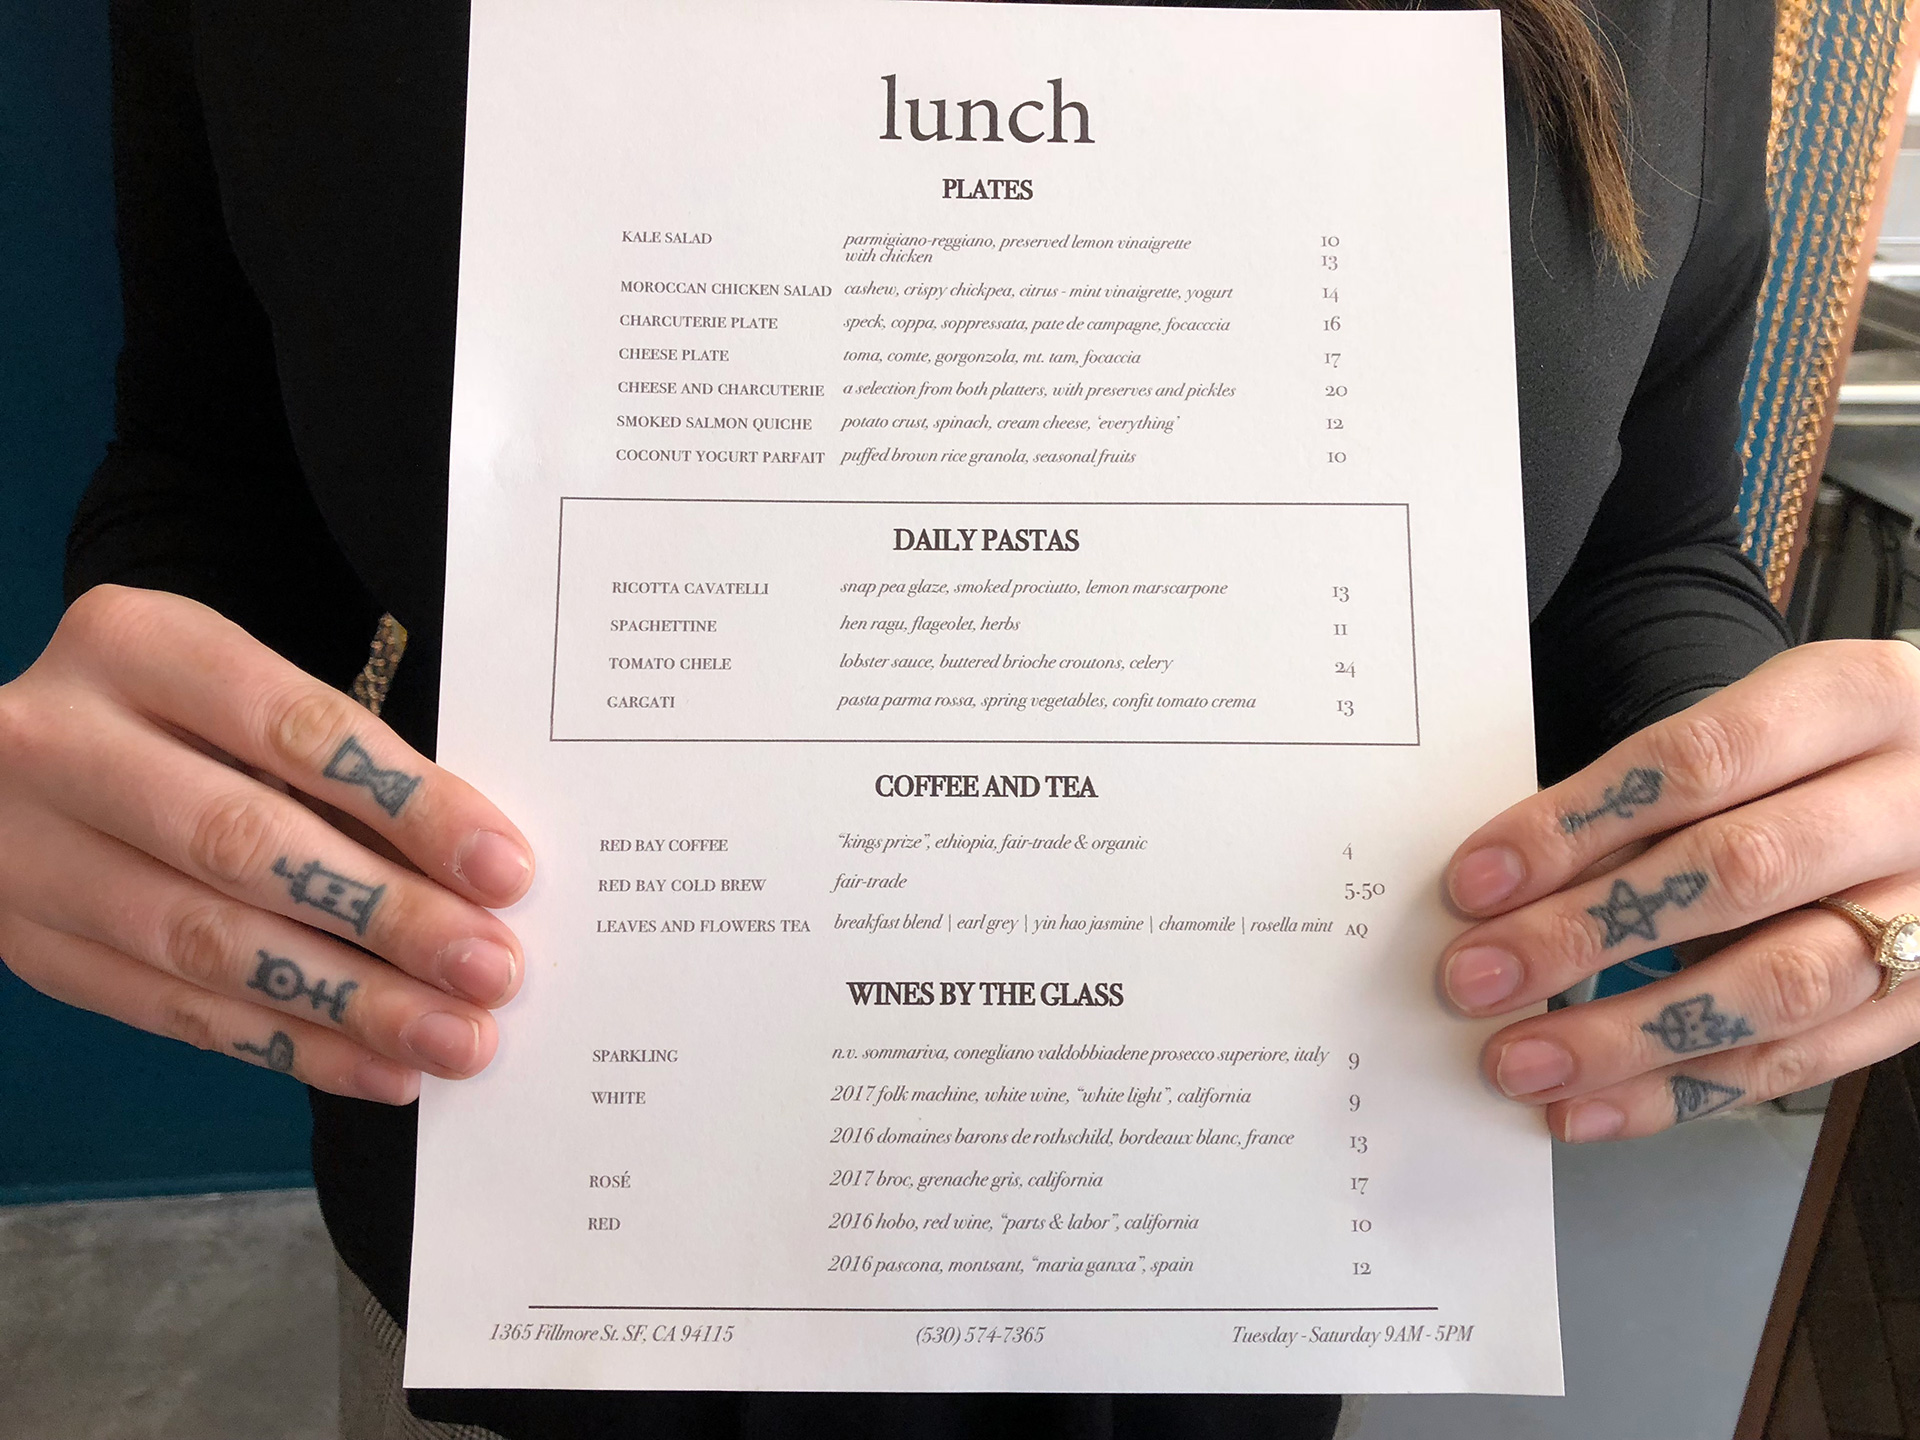 Madison Michael's hands showcase the lunch menu at Merchant Roots